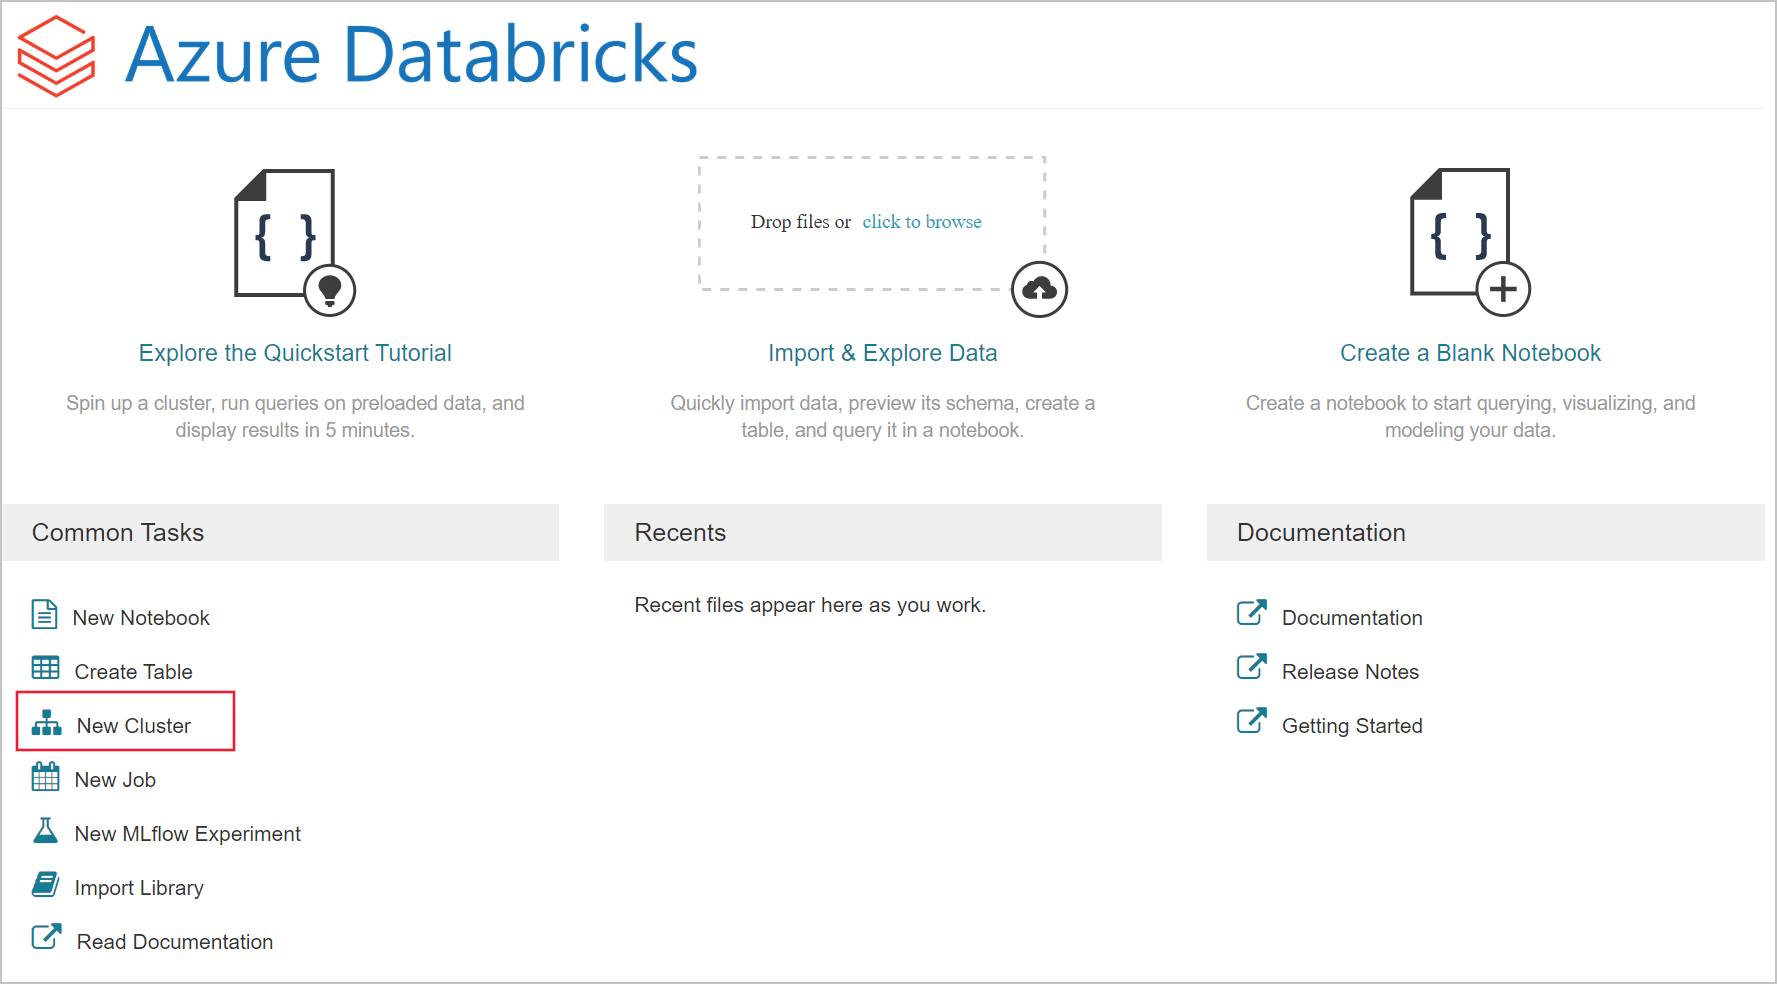 Quickstart: Run a Spark job on Azure Databricks using Azure